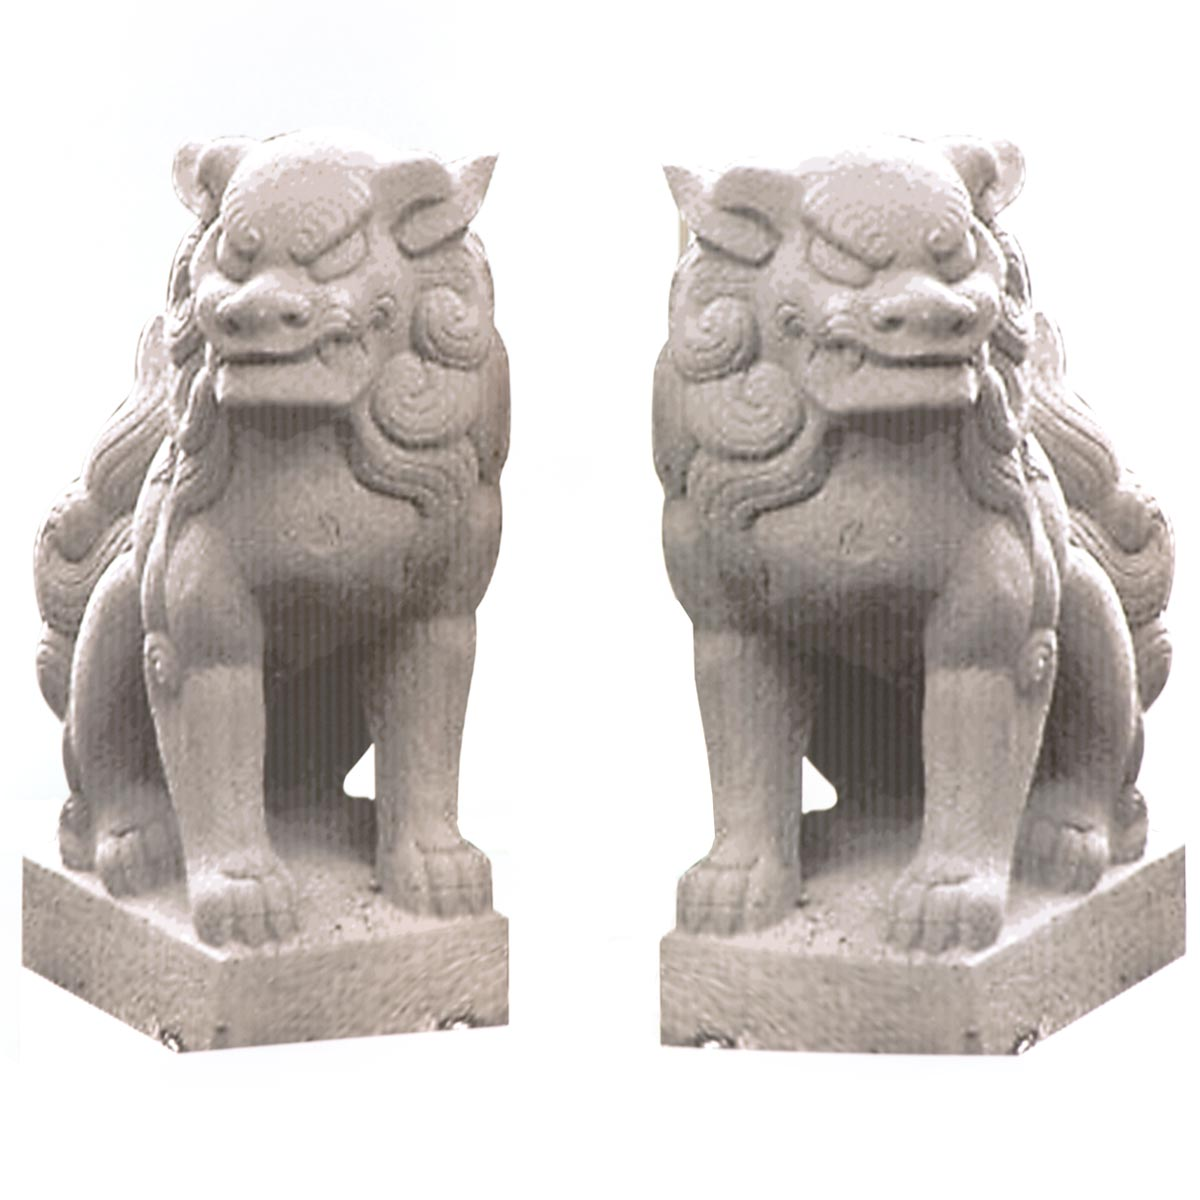 Foo Dogs Kit - Set of 2